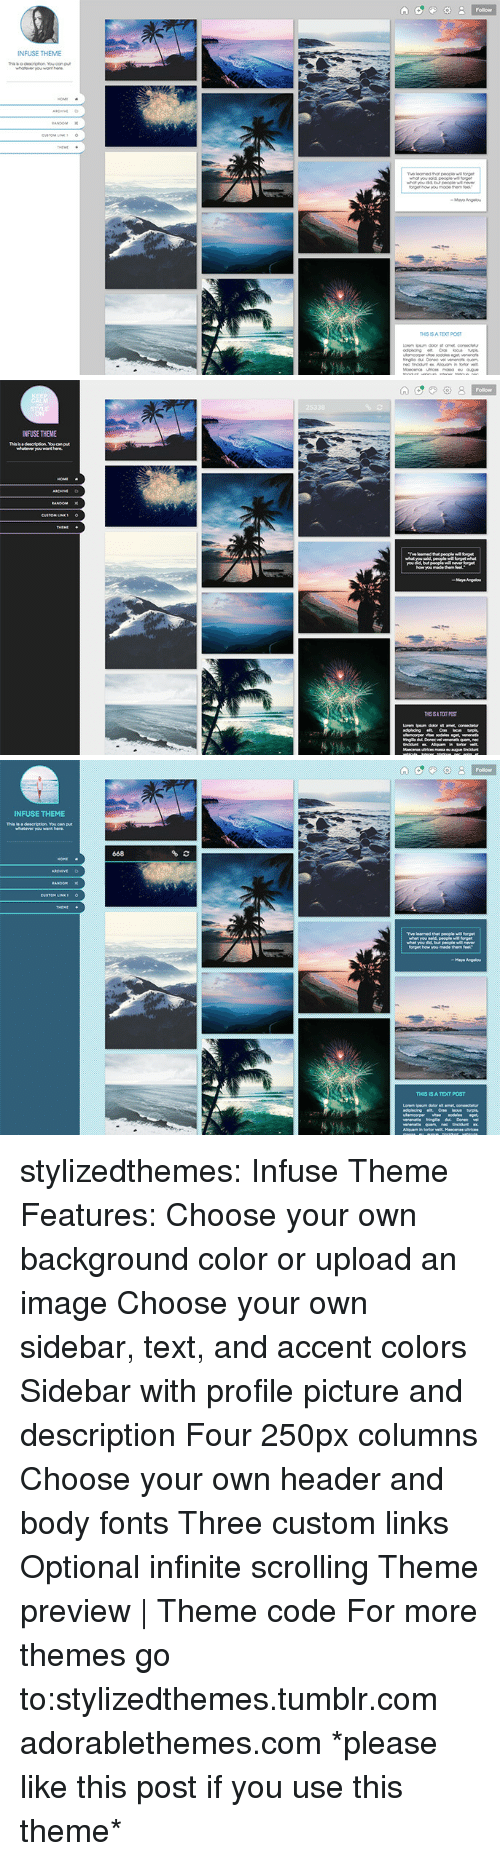 Target, Tumblr, and Blog: Follow  or  NFUSE THEME   INFUSE THEME   INFUSE THEME  This is a  668  Tve learned that people forget  THIS IS A TEXT POST stylizedthemes: Infuse Theme Features:  Choose your own background color or upload an image  Choose your own sidebar, text, and accent colors  Sidebar with profile picture and description Four 250px columns  Choose your own header and body fonts Three custom links Optional infinite scrolling  Theme preview | Theme code  For more themes go to:stylizedthemes.tumblr.com  adorablethemes.com *please like this post if you use this theme*